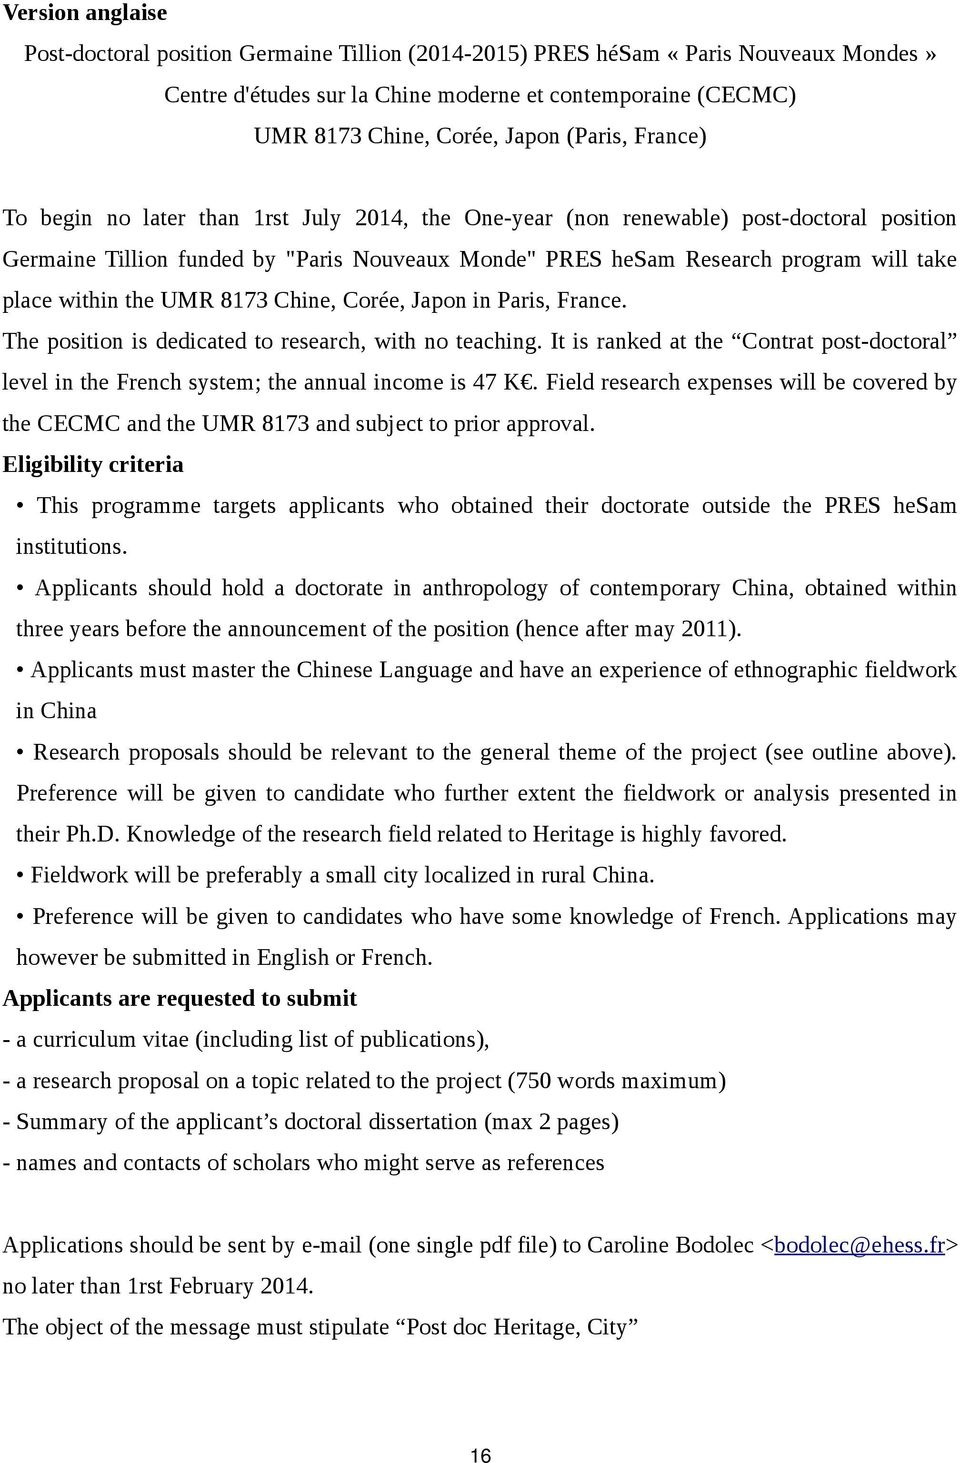 place within the UMR 8173 Chine, Corée, Japon in Paris, France. The position is dedicated to research, with no teaching.